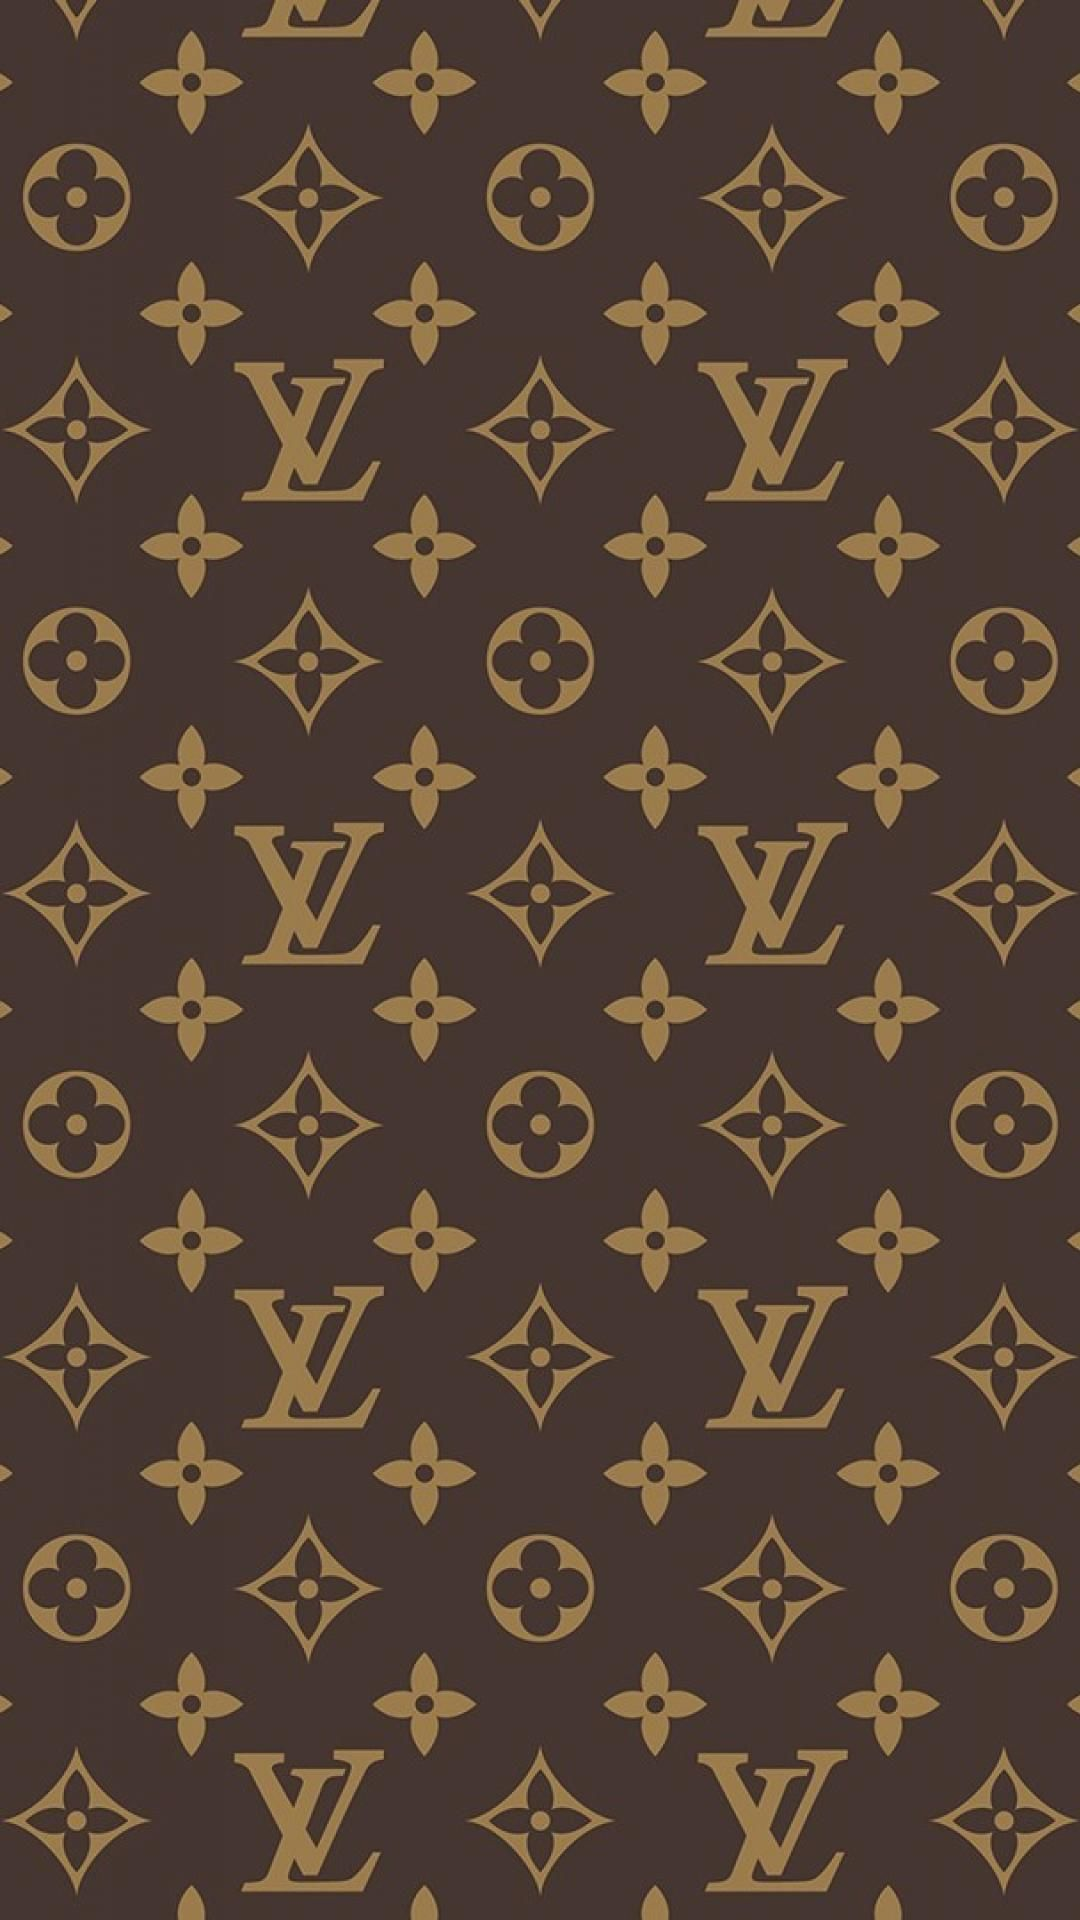 Louis vuitton wallpaper hd